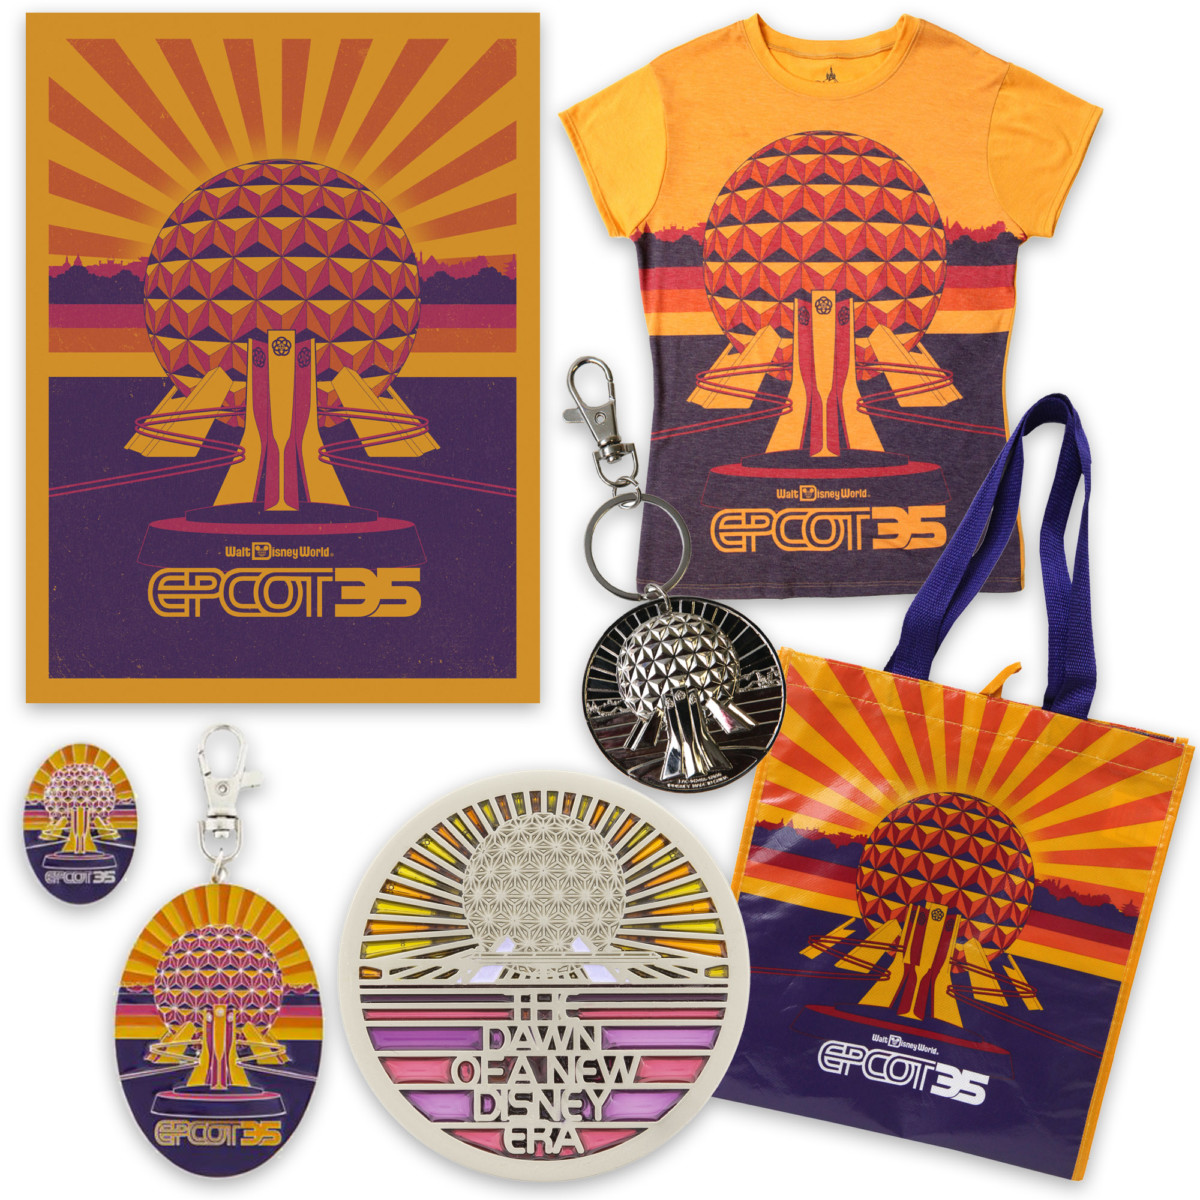 Begin to Dream with Retro-Inspired Merchandise for 35th Anniversary of Epcot This Fall 1